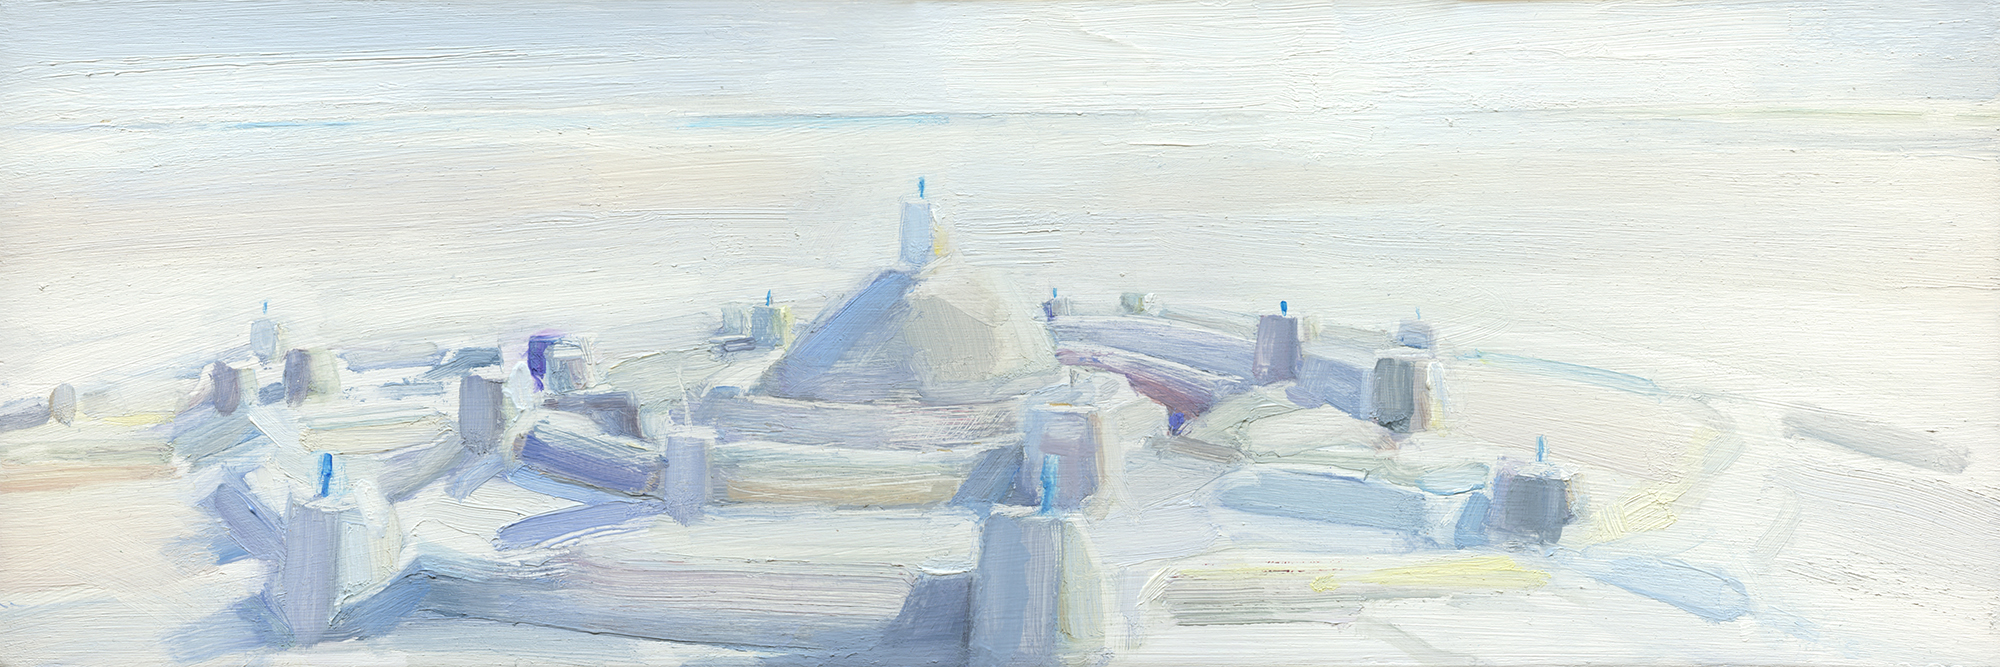 'Alnmouth Castle with Ice Cream Spoons' oil on board 48cm x 16cm